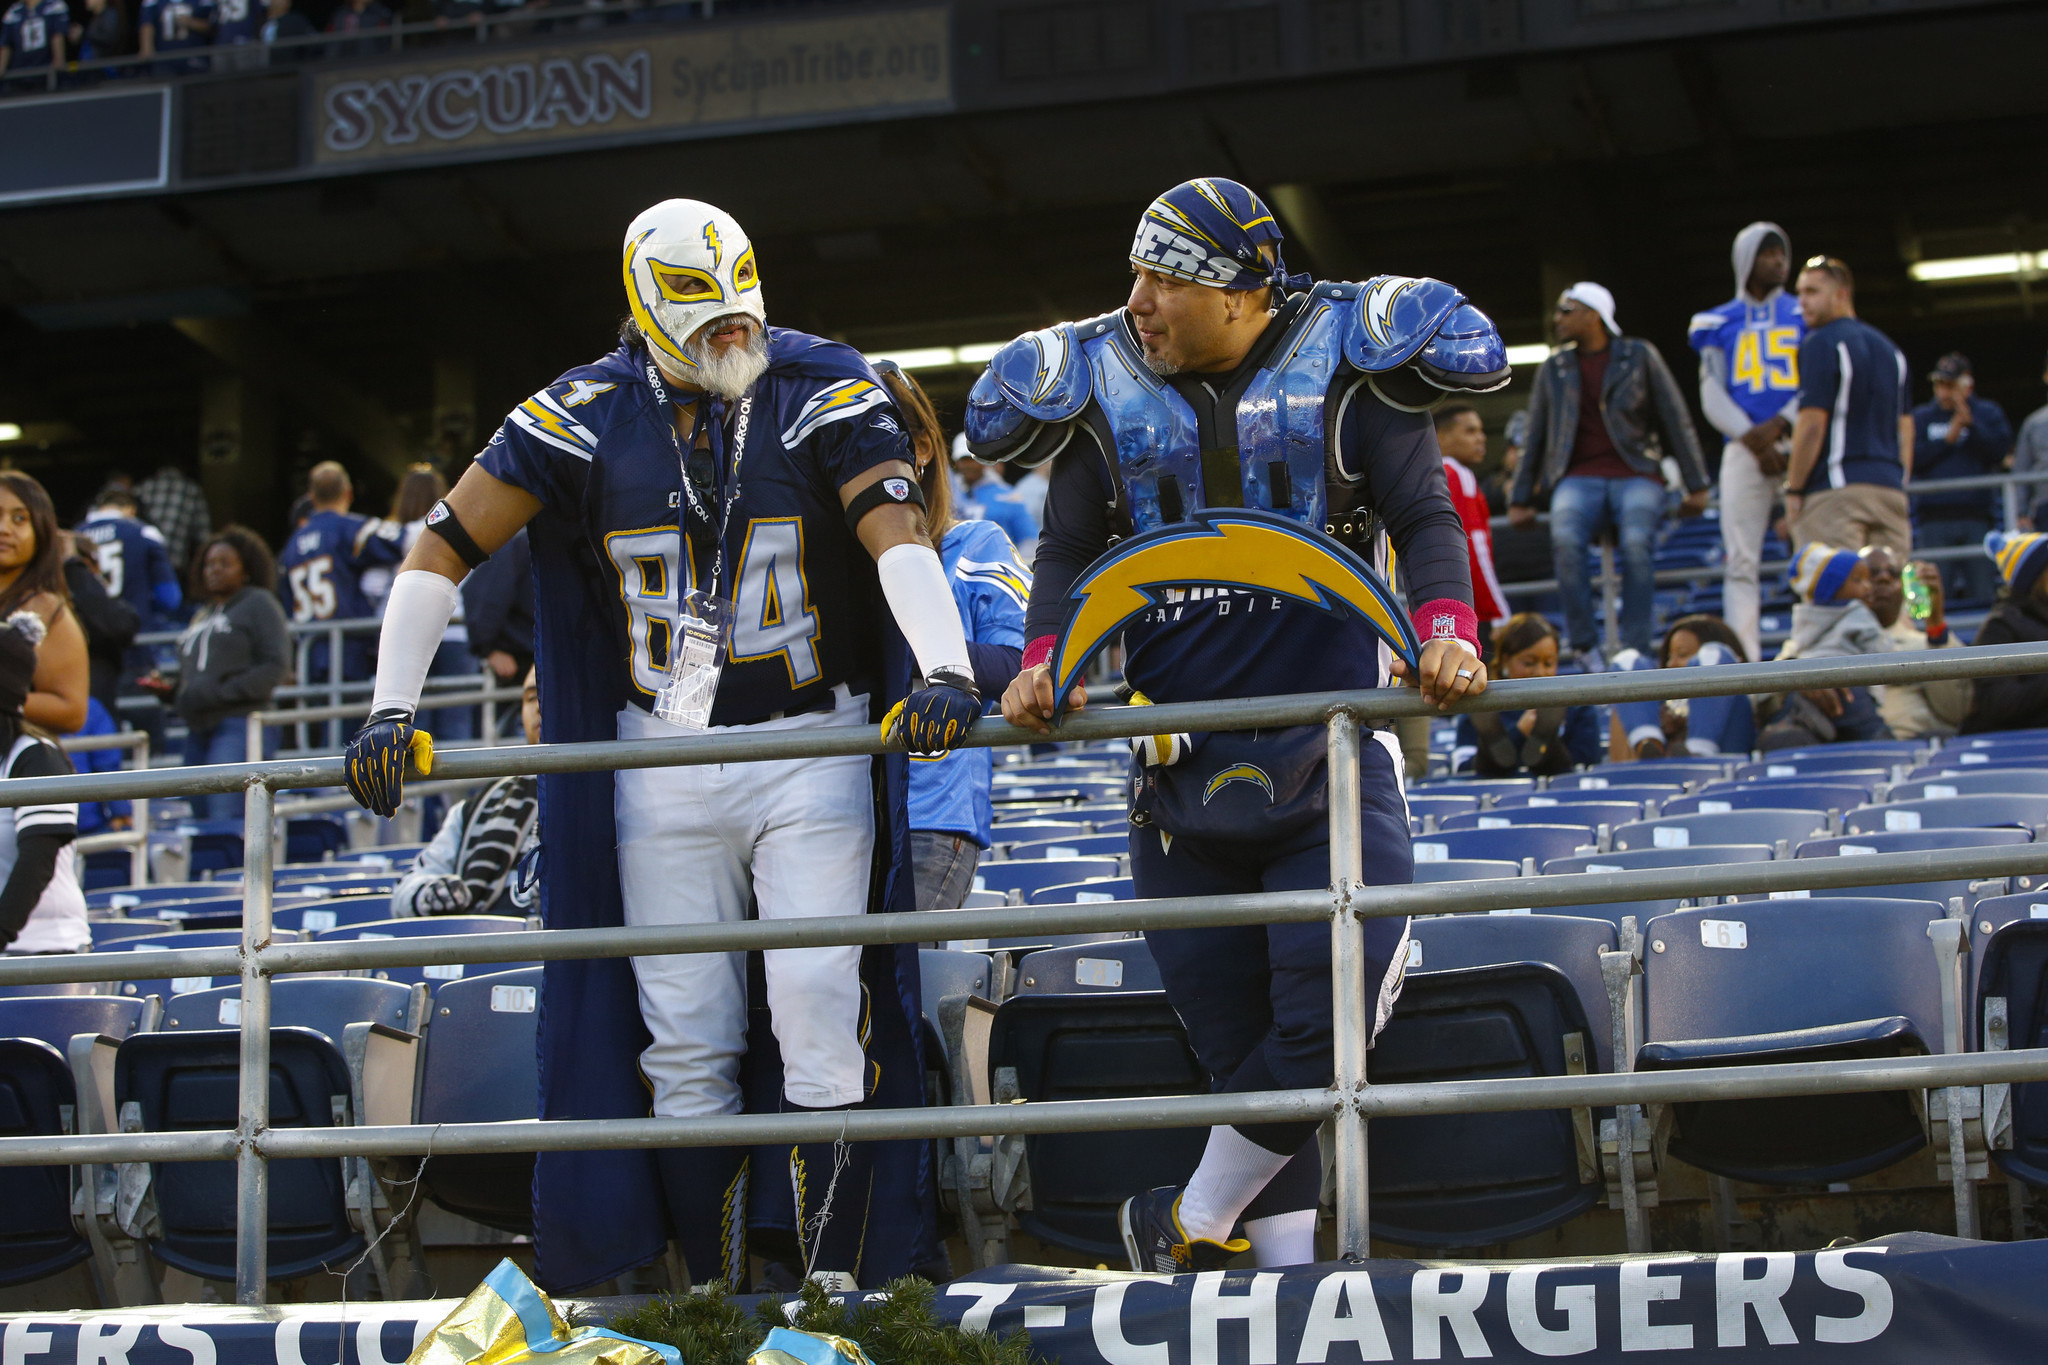 Sd-sp-nick-canepa-chargers-gone-20161230